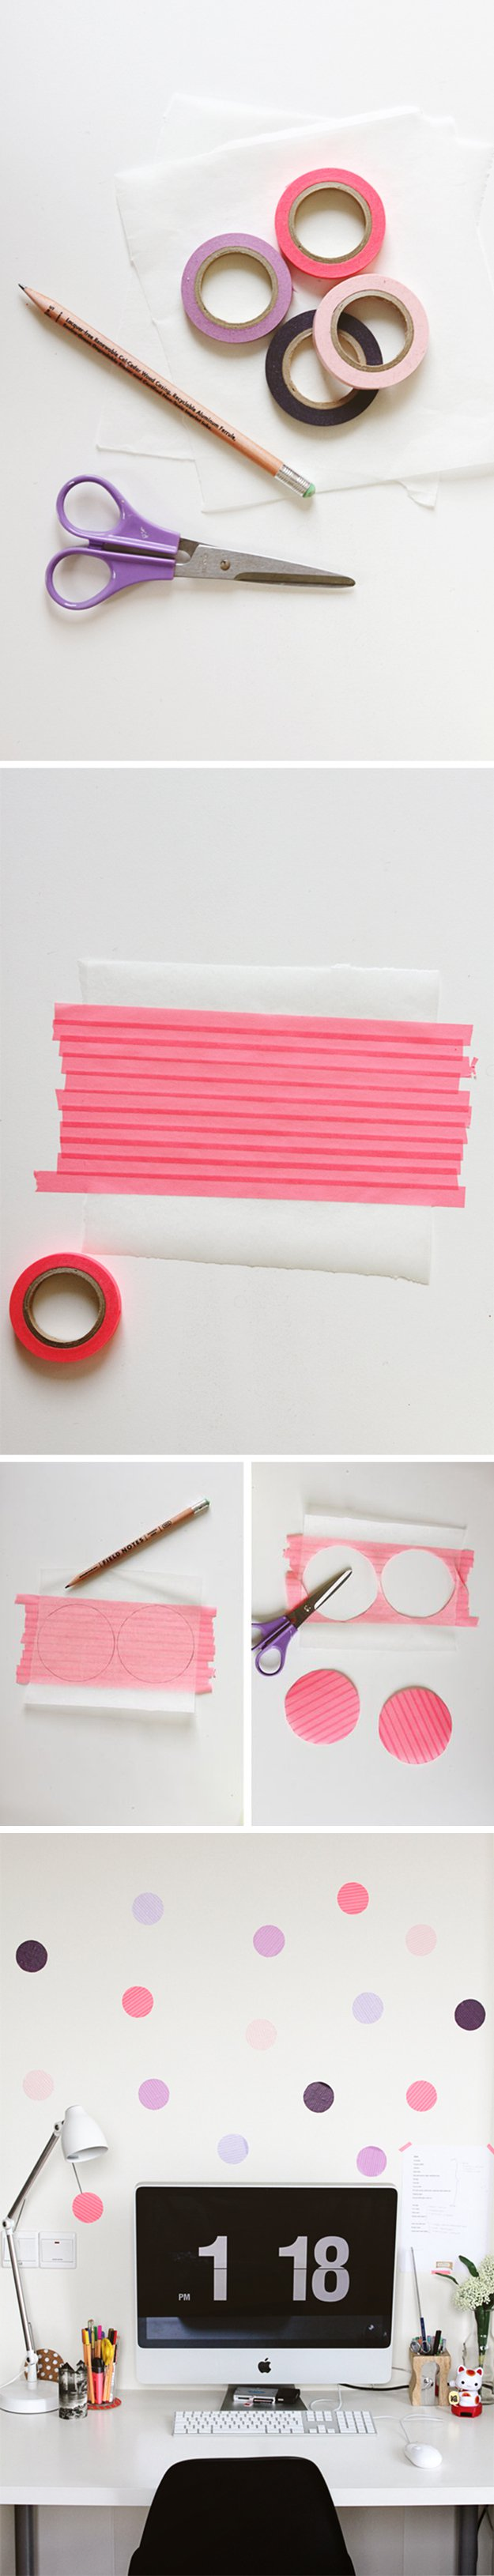 Washi Tape Crafts - DIY Dot Wall - Wall Art, Frames, Cards, Pencils, Room Decor and DIY Gifts, Back To School Supplies - Creative, Fun Craft Ideas for Teens, Tweens and Teenagers - Step by Step Tutorials and Instructions http://diyprojectsforteens.com/washi-tape-crafts